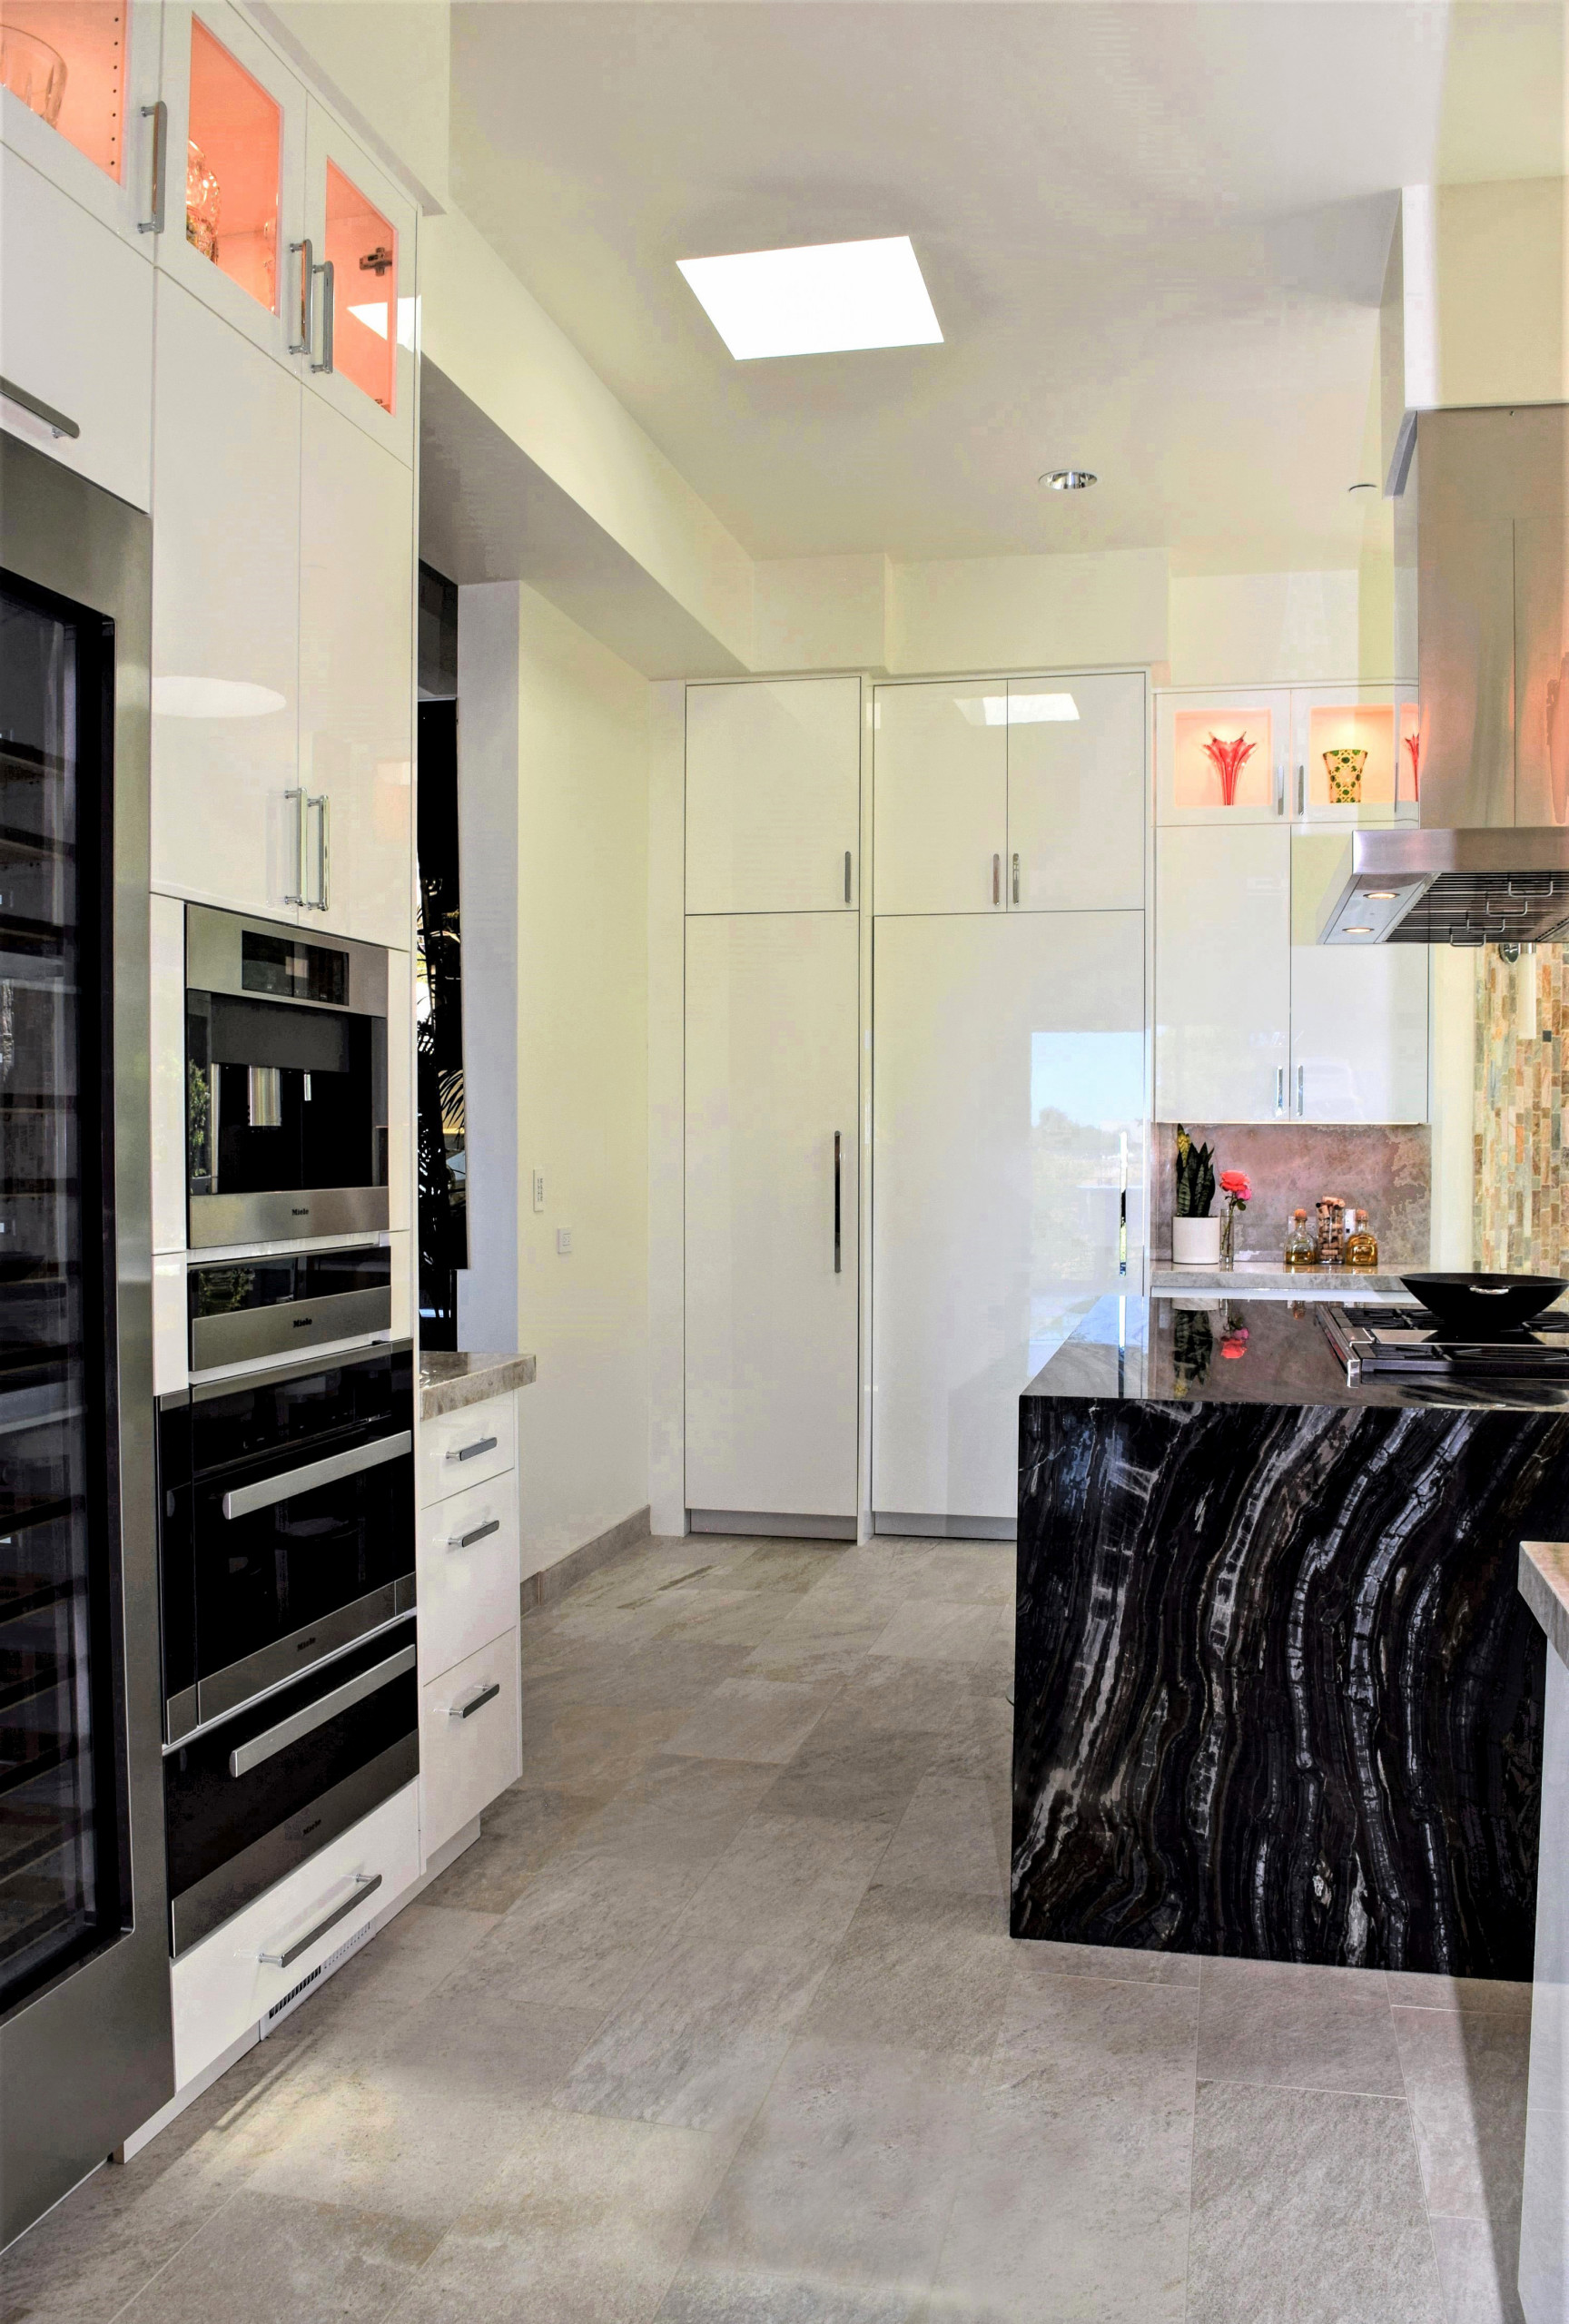 My Contemporary Kitchen Remodel For A Client in The Hollywood Hills Bird Streets